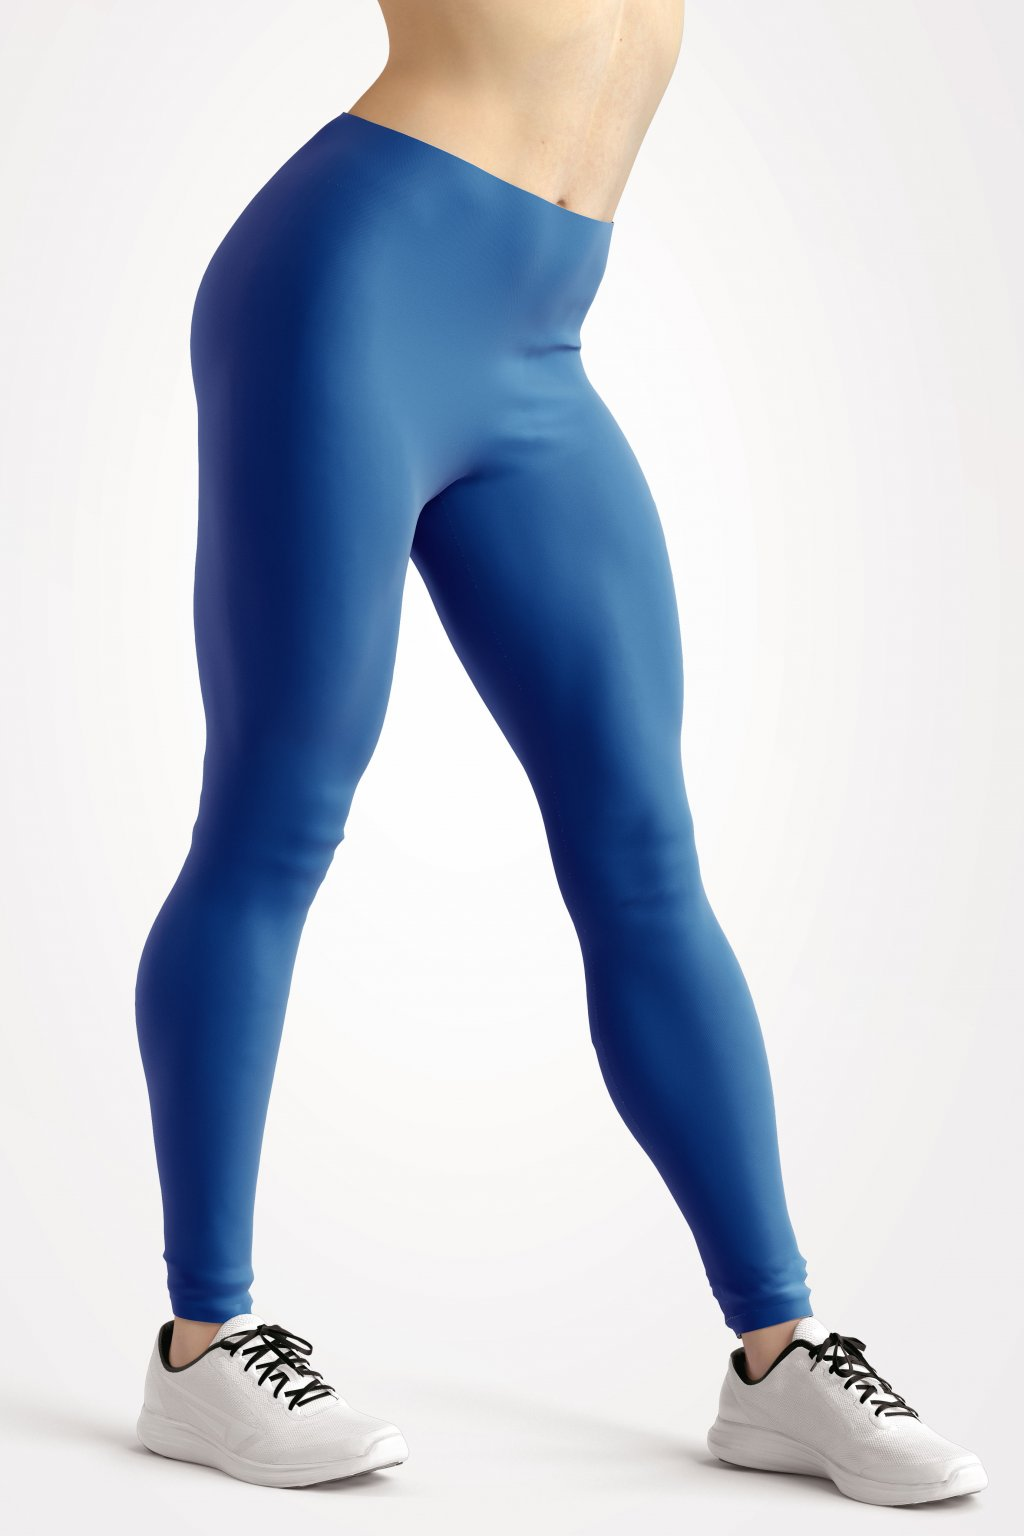 leggings sapphire blue essentials front side by utopy